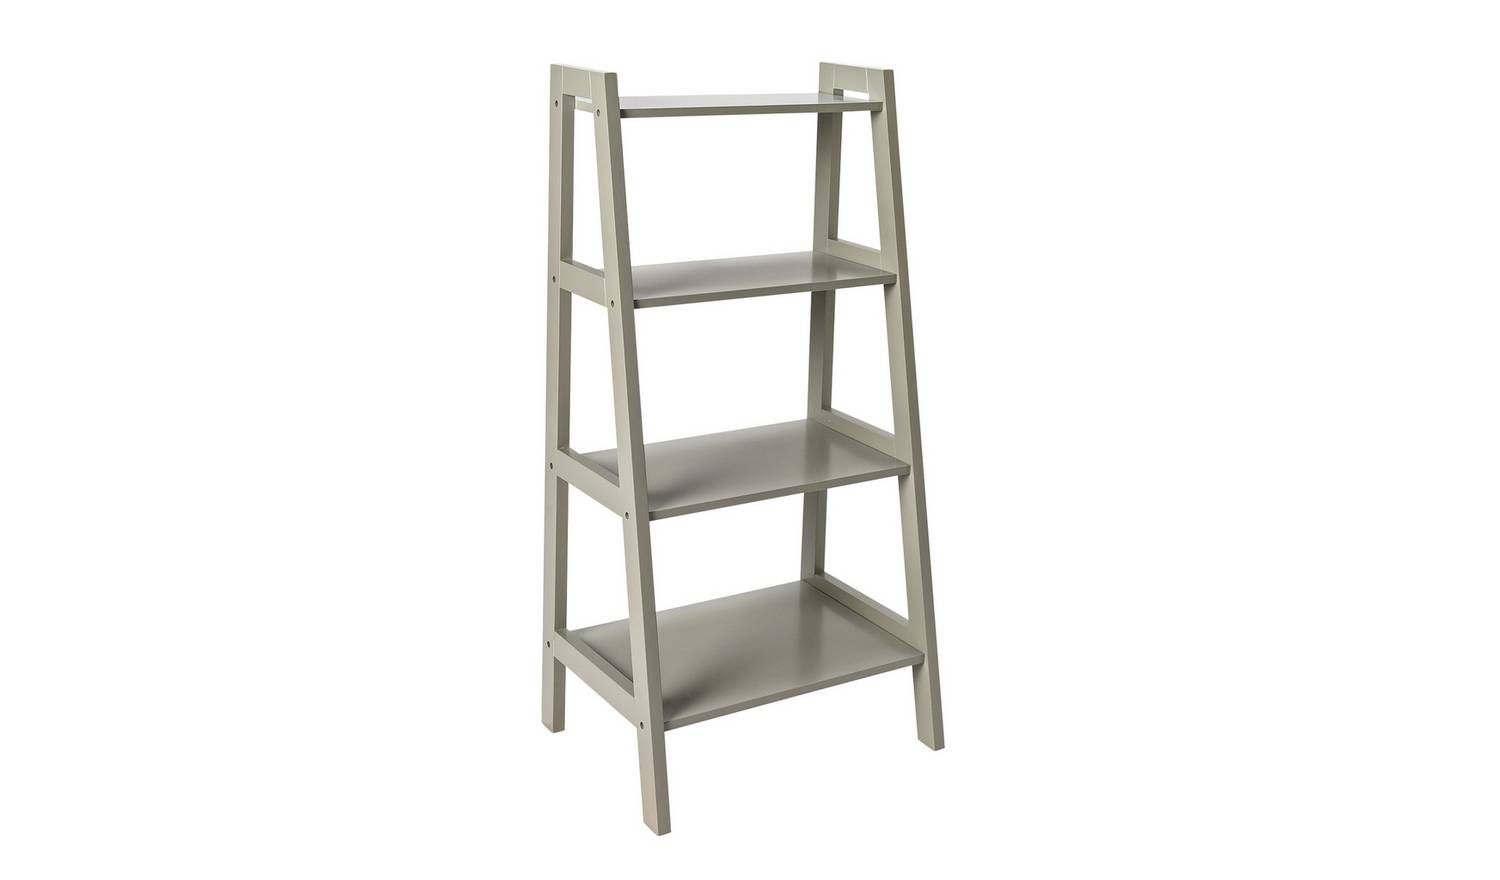 Buy Argos Home Ladder Storage Unit Grey Bathroom Furniture Ladder Storage Grey Bathrooms Bathroom Shelves